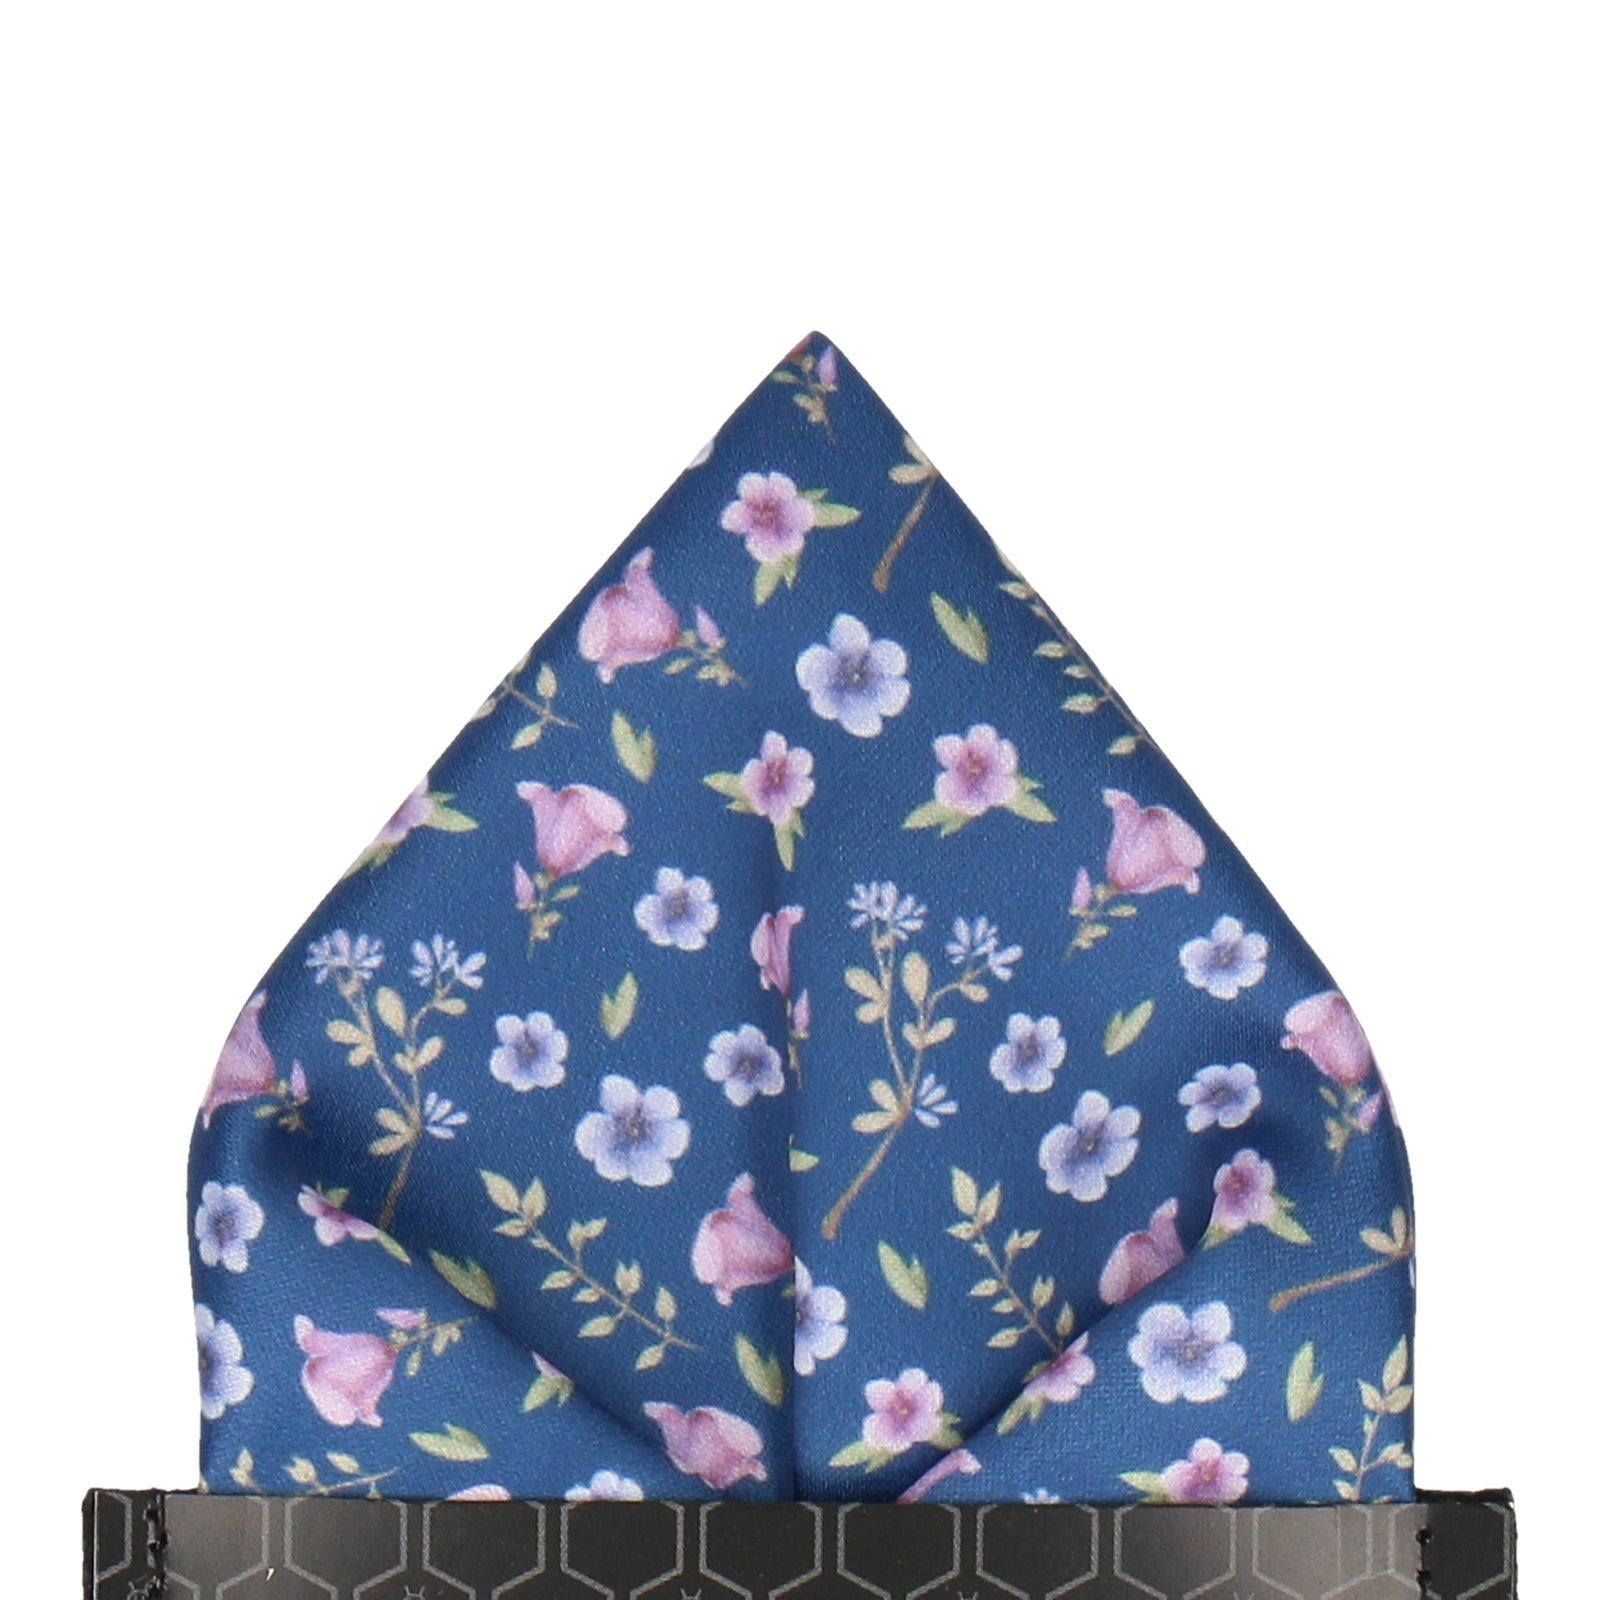 Ditsy Small Floral Navy Blue Pocket Square